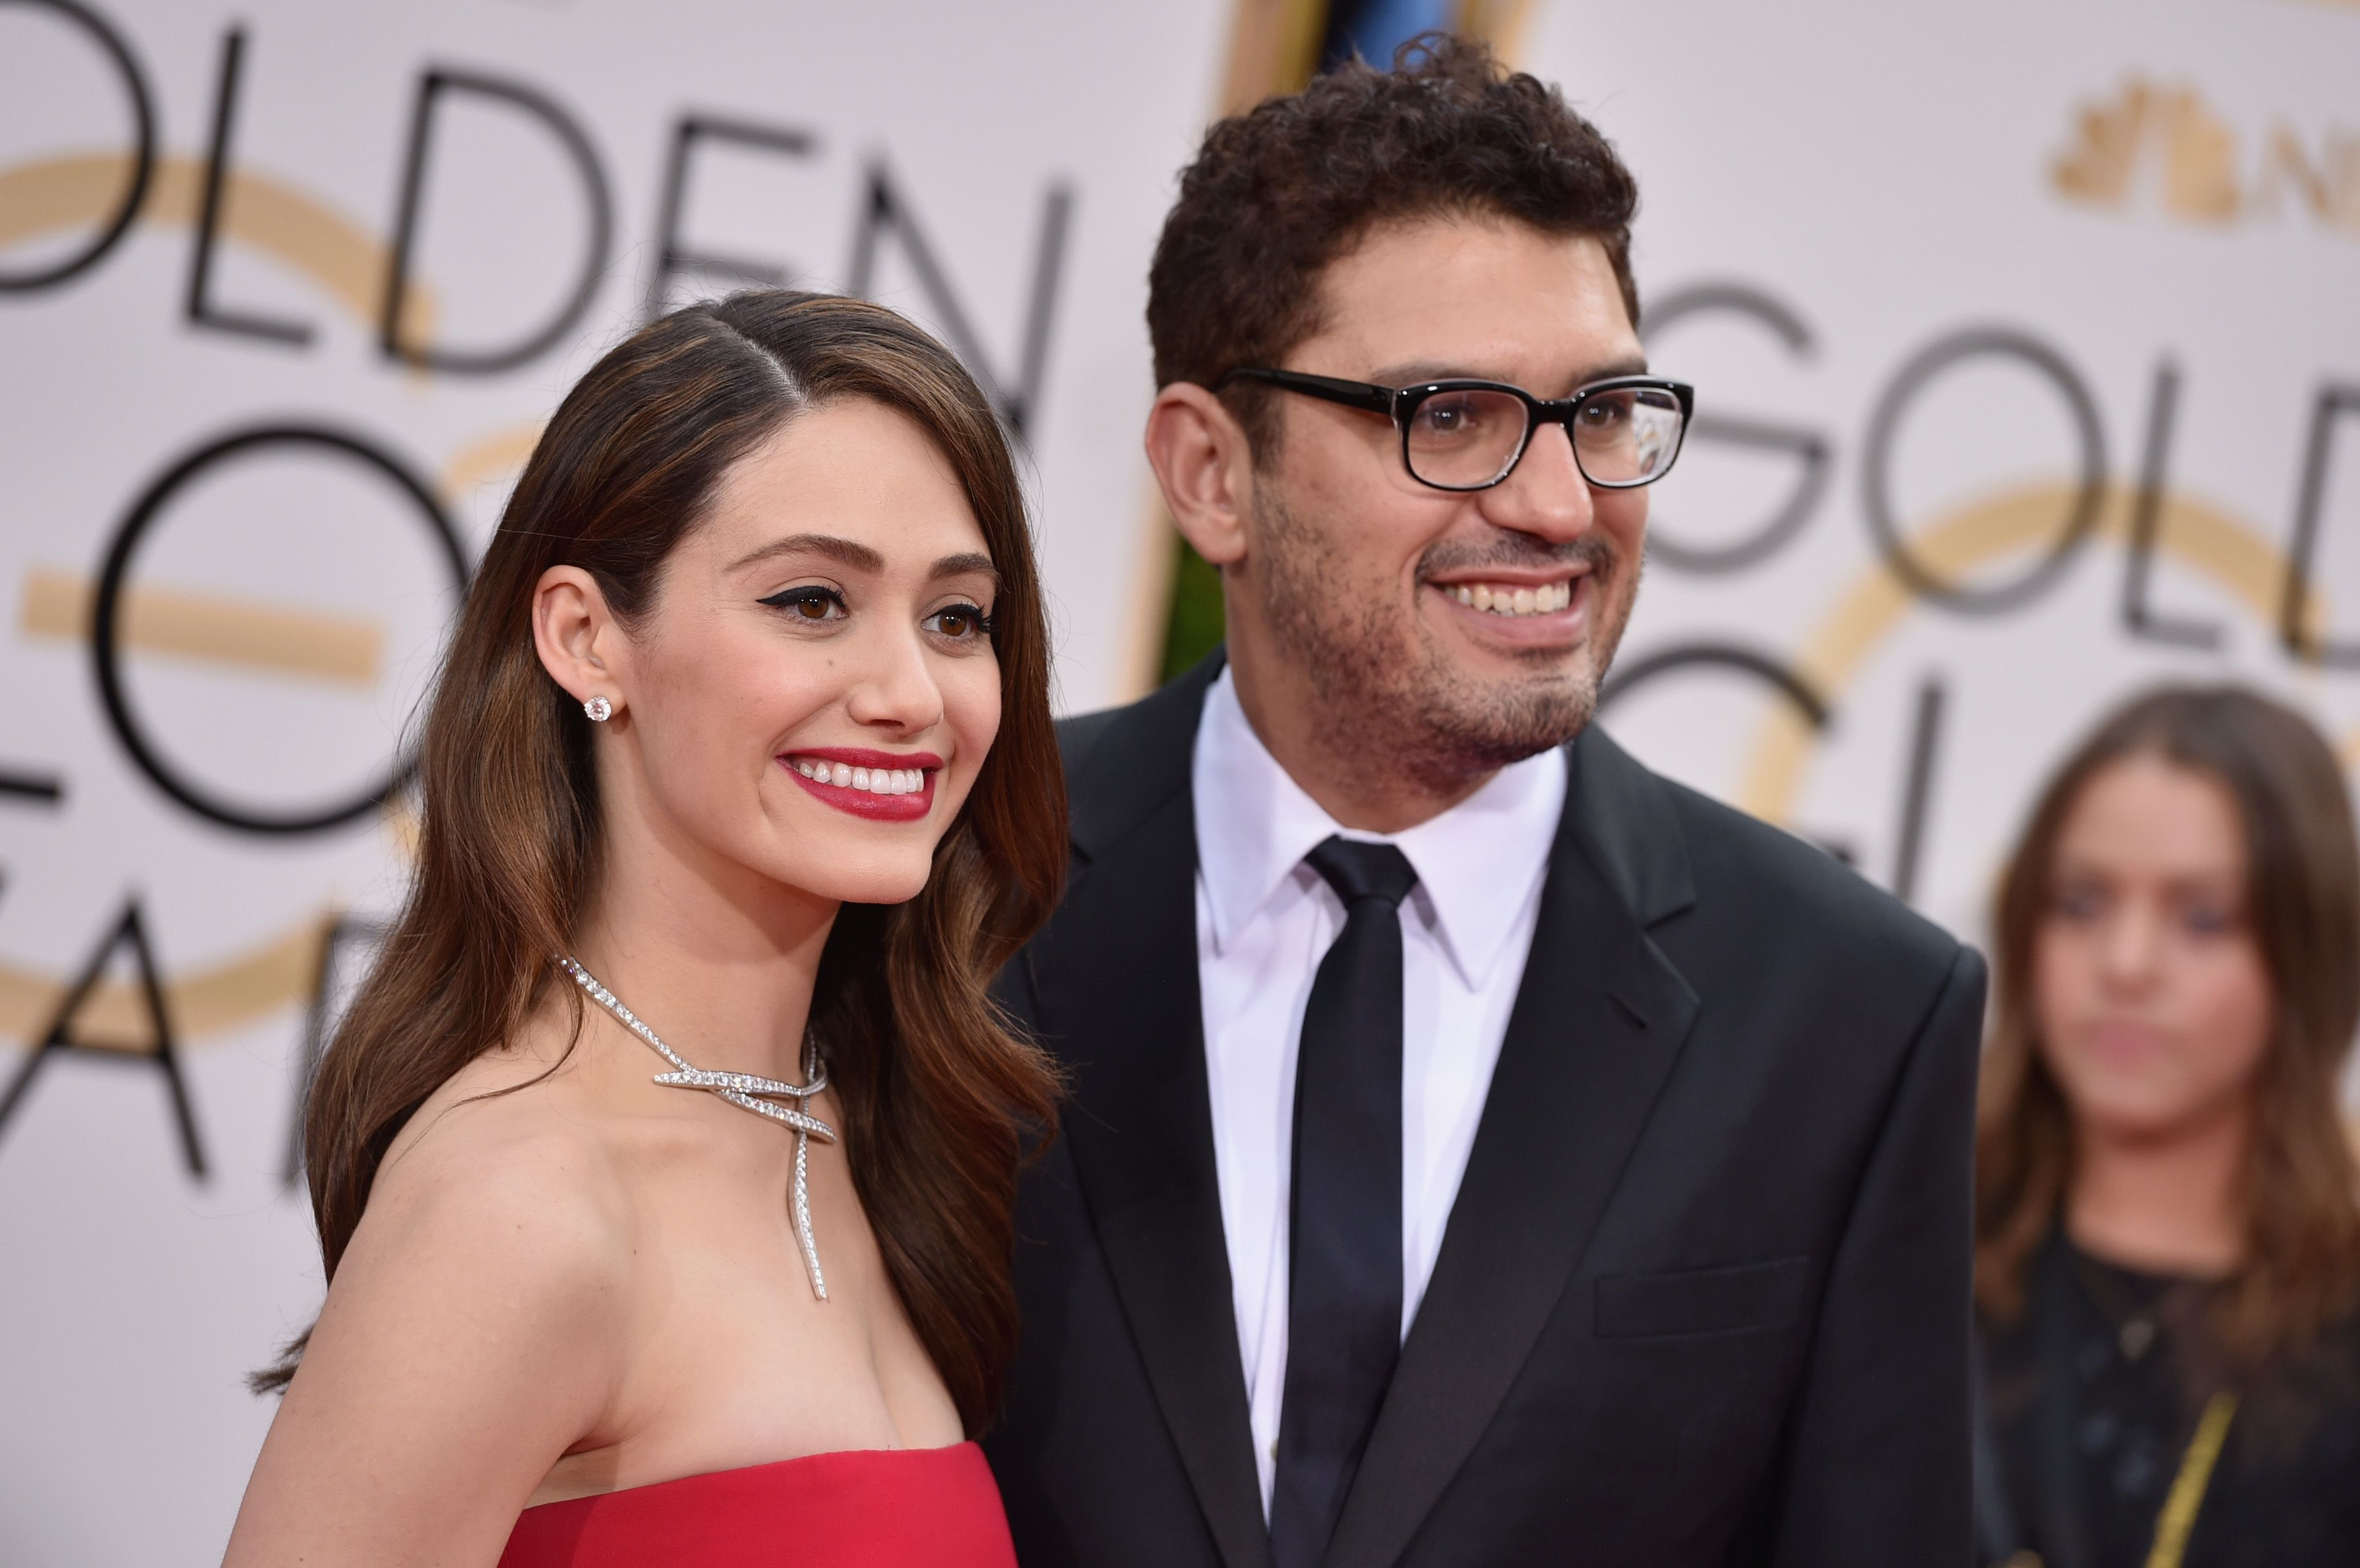 Sam Esmail and Emmy Rossum arrives at the 73rd Annual Golden Globe Awards / Getty Images